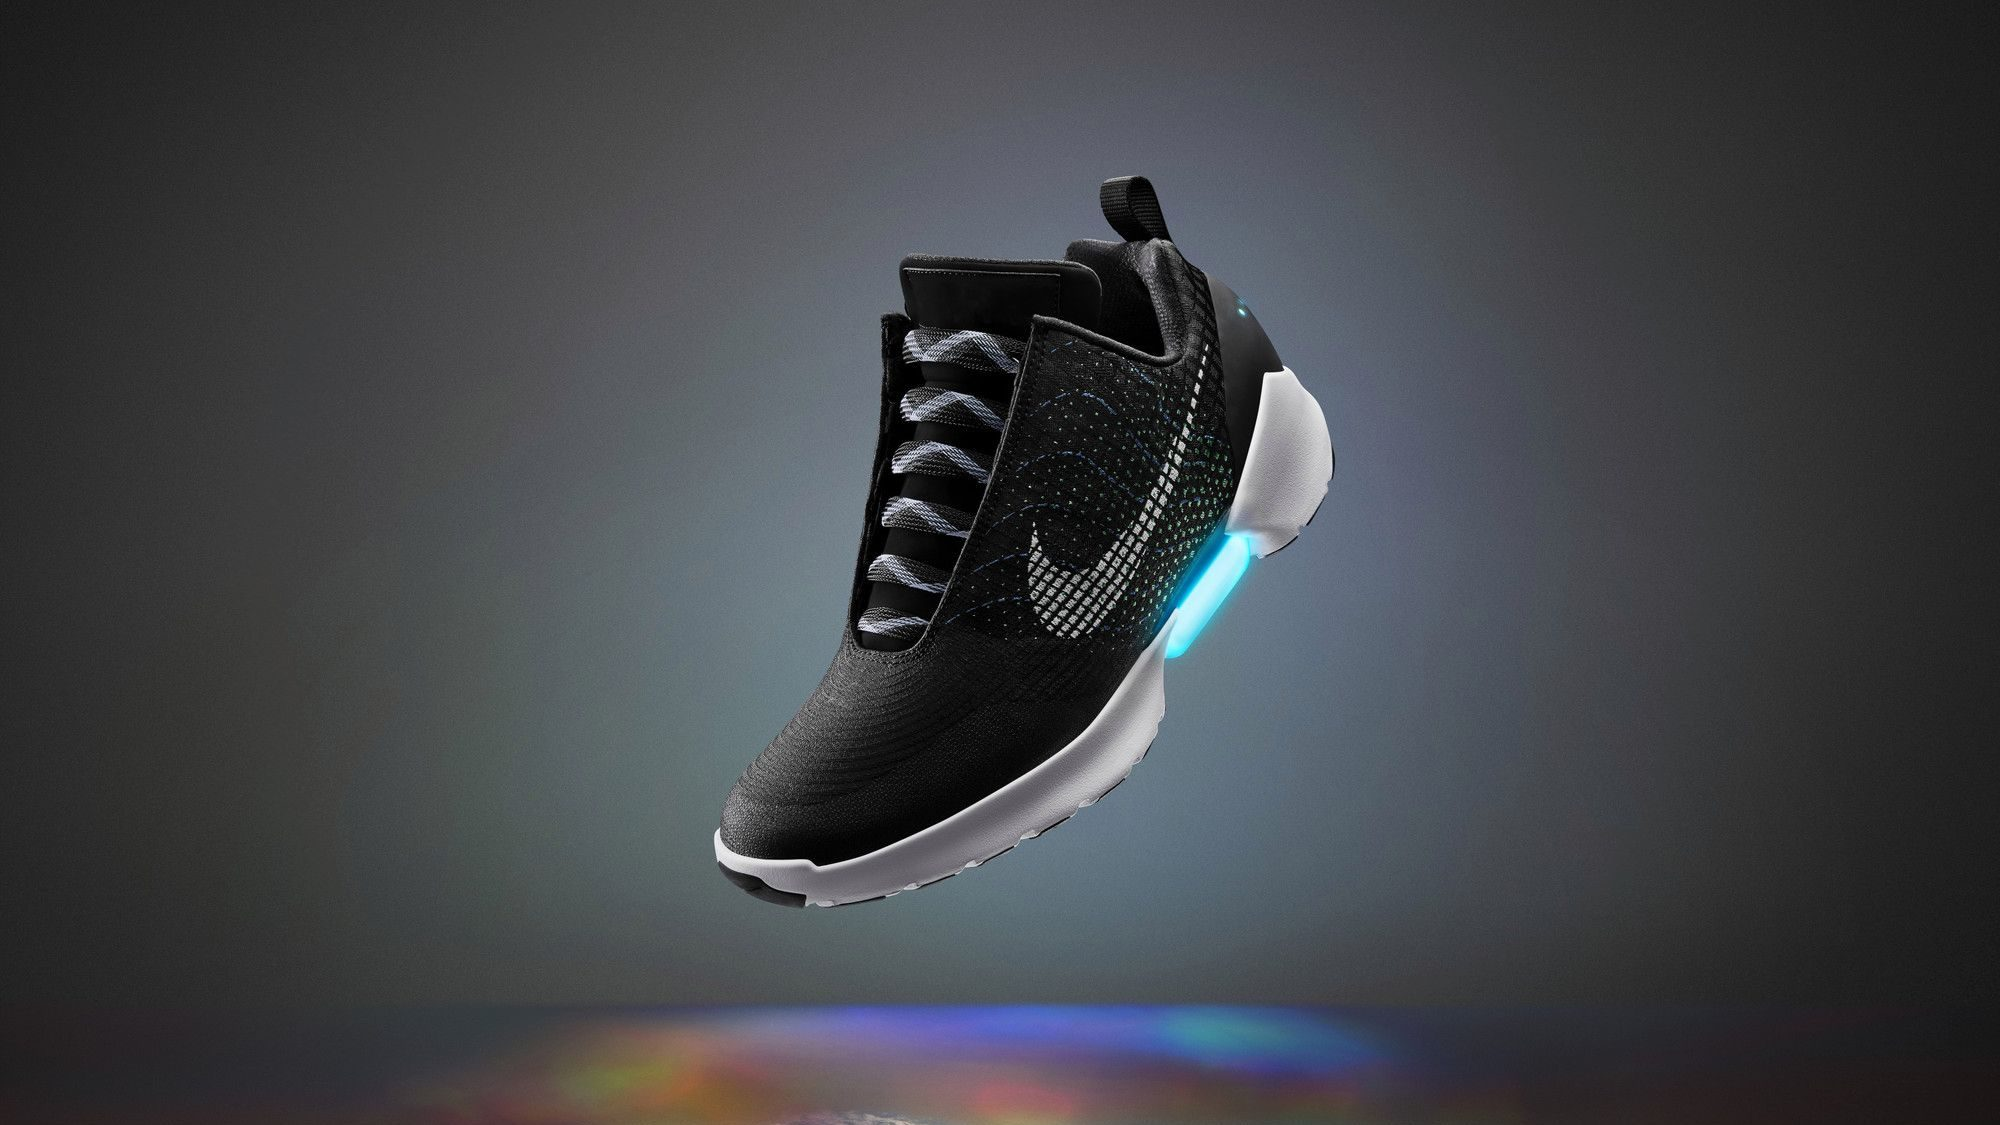 786a45a3ac How Nike's HyperAdapt and Mag self-lacing sneakers were created — Quartz